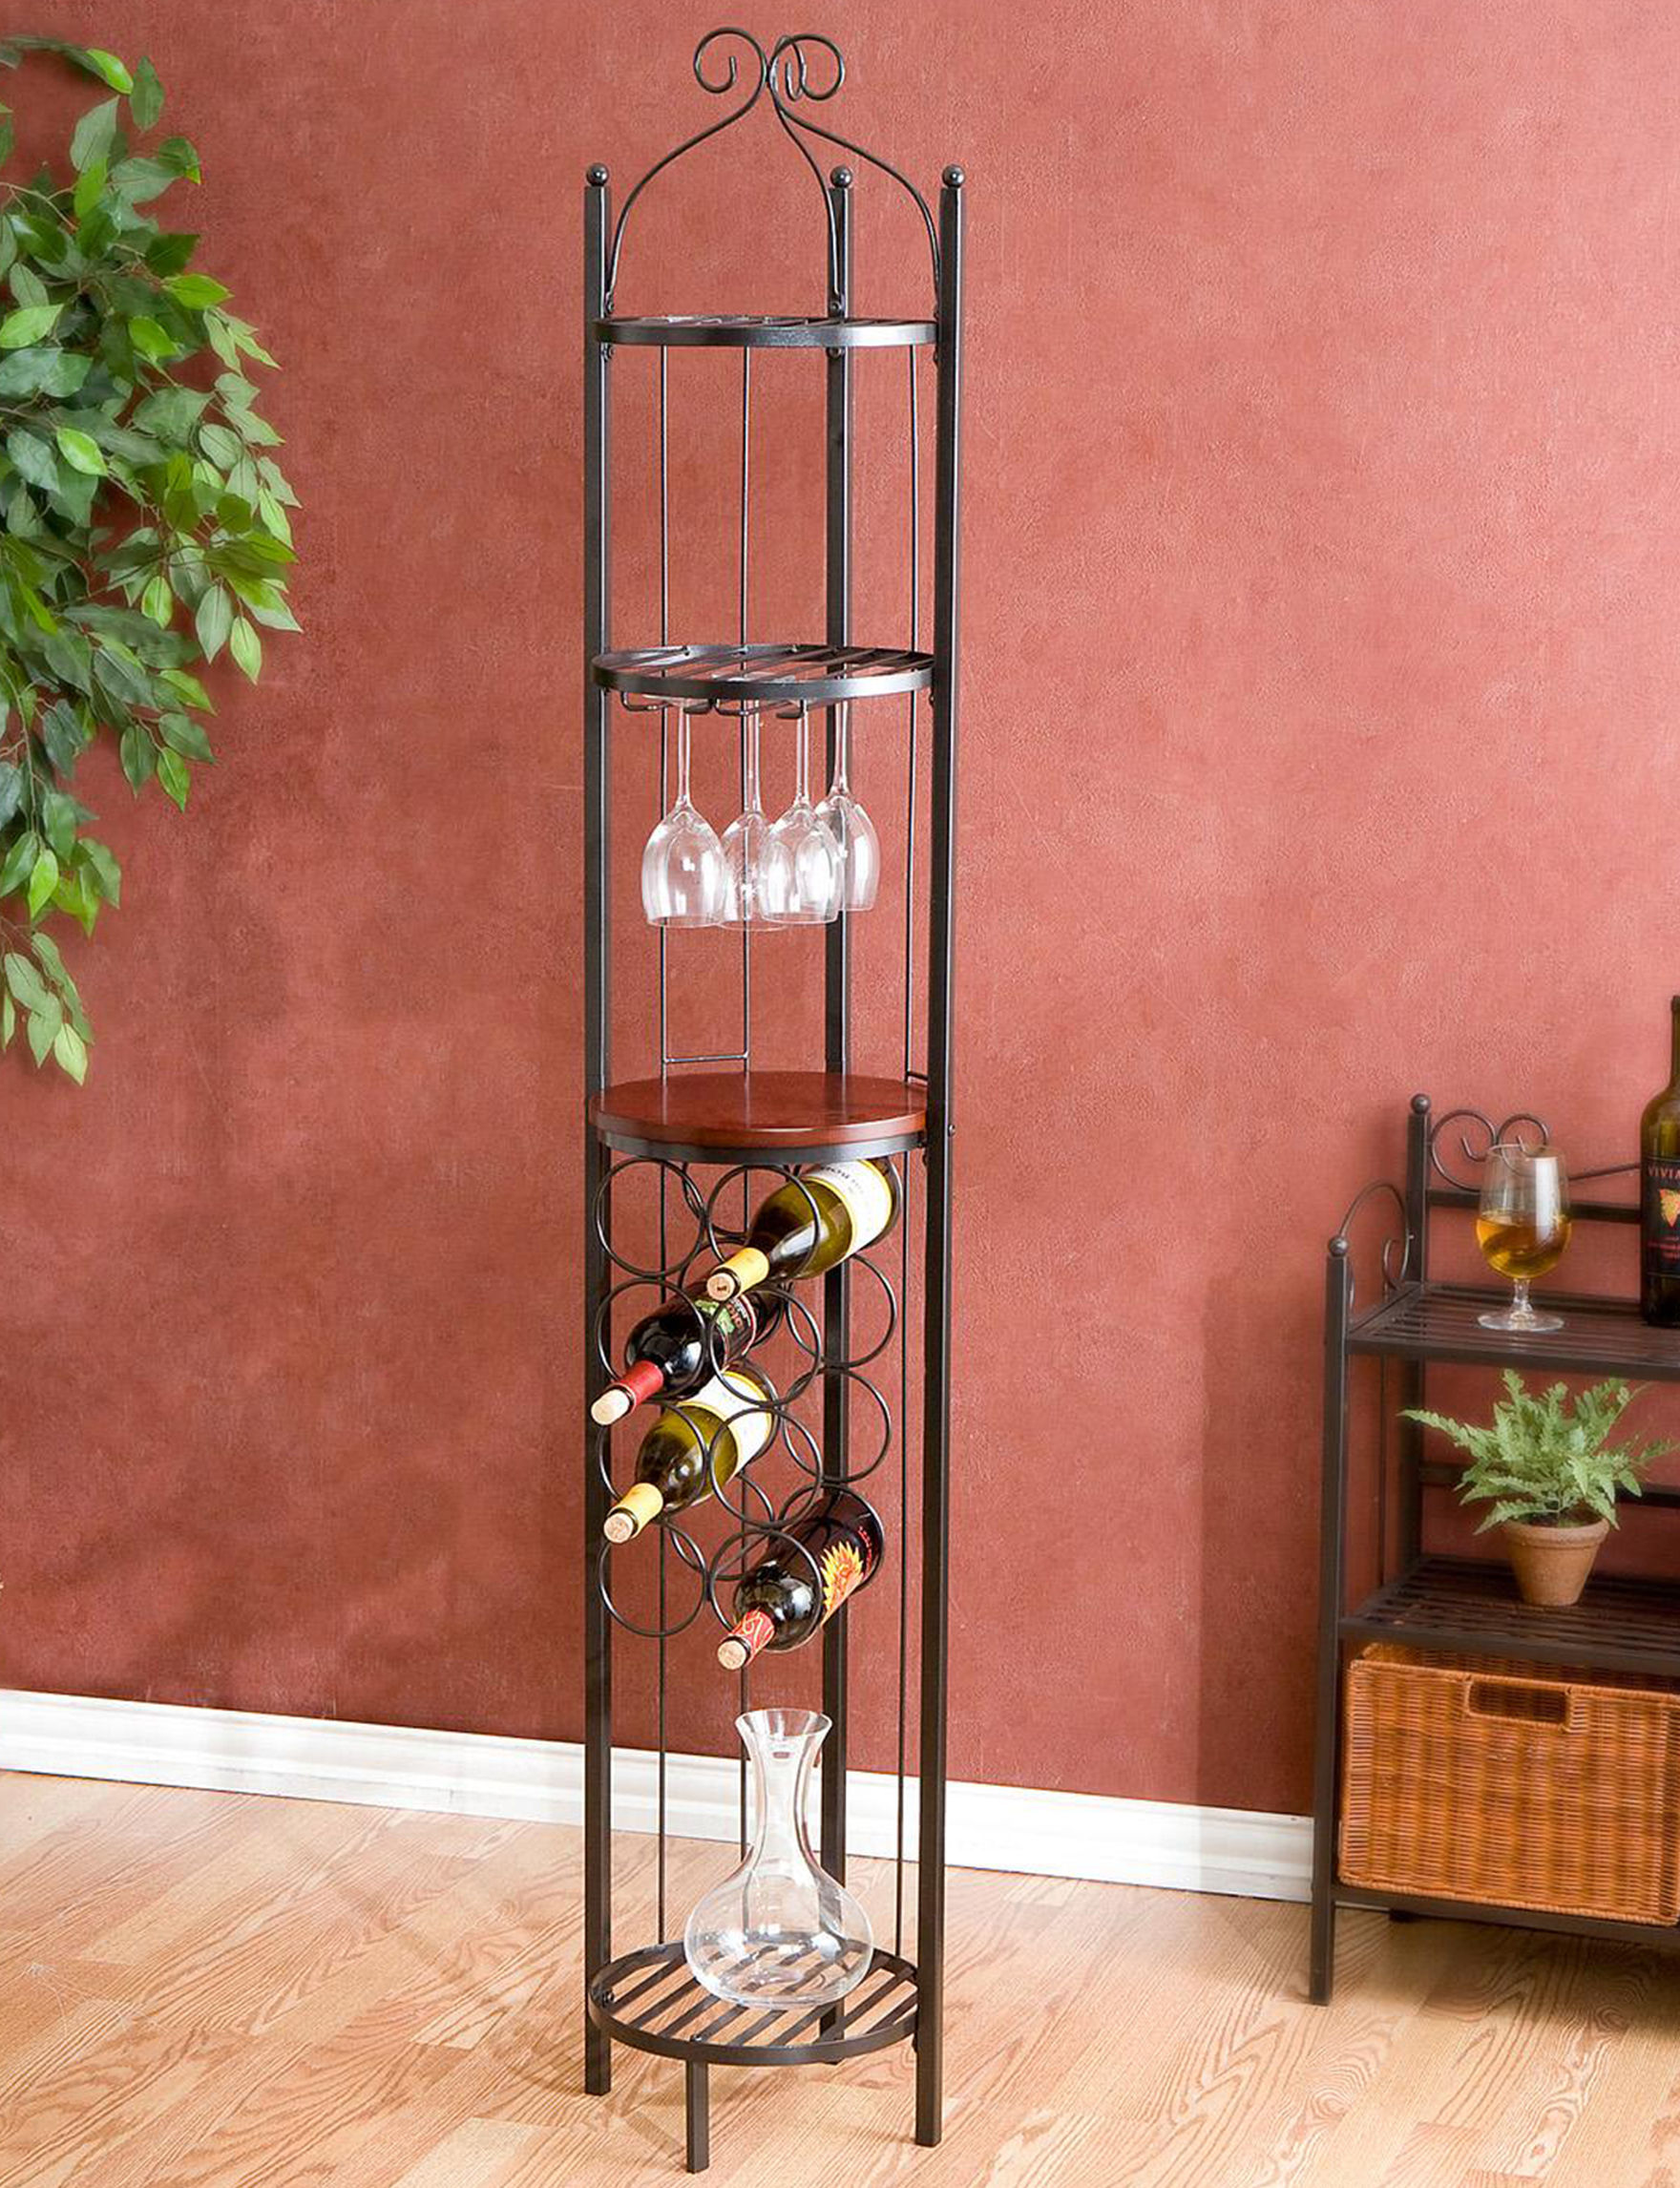 Southern Enterprises Grey Bar & Wine Storage Wine Racks Home Accents Kitchen & Dining Furniture